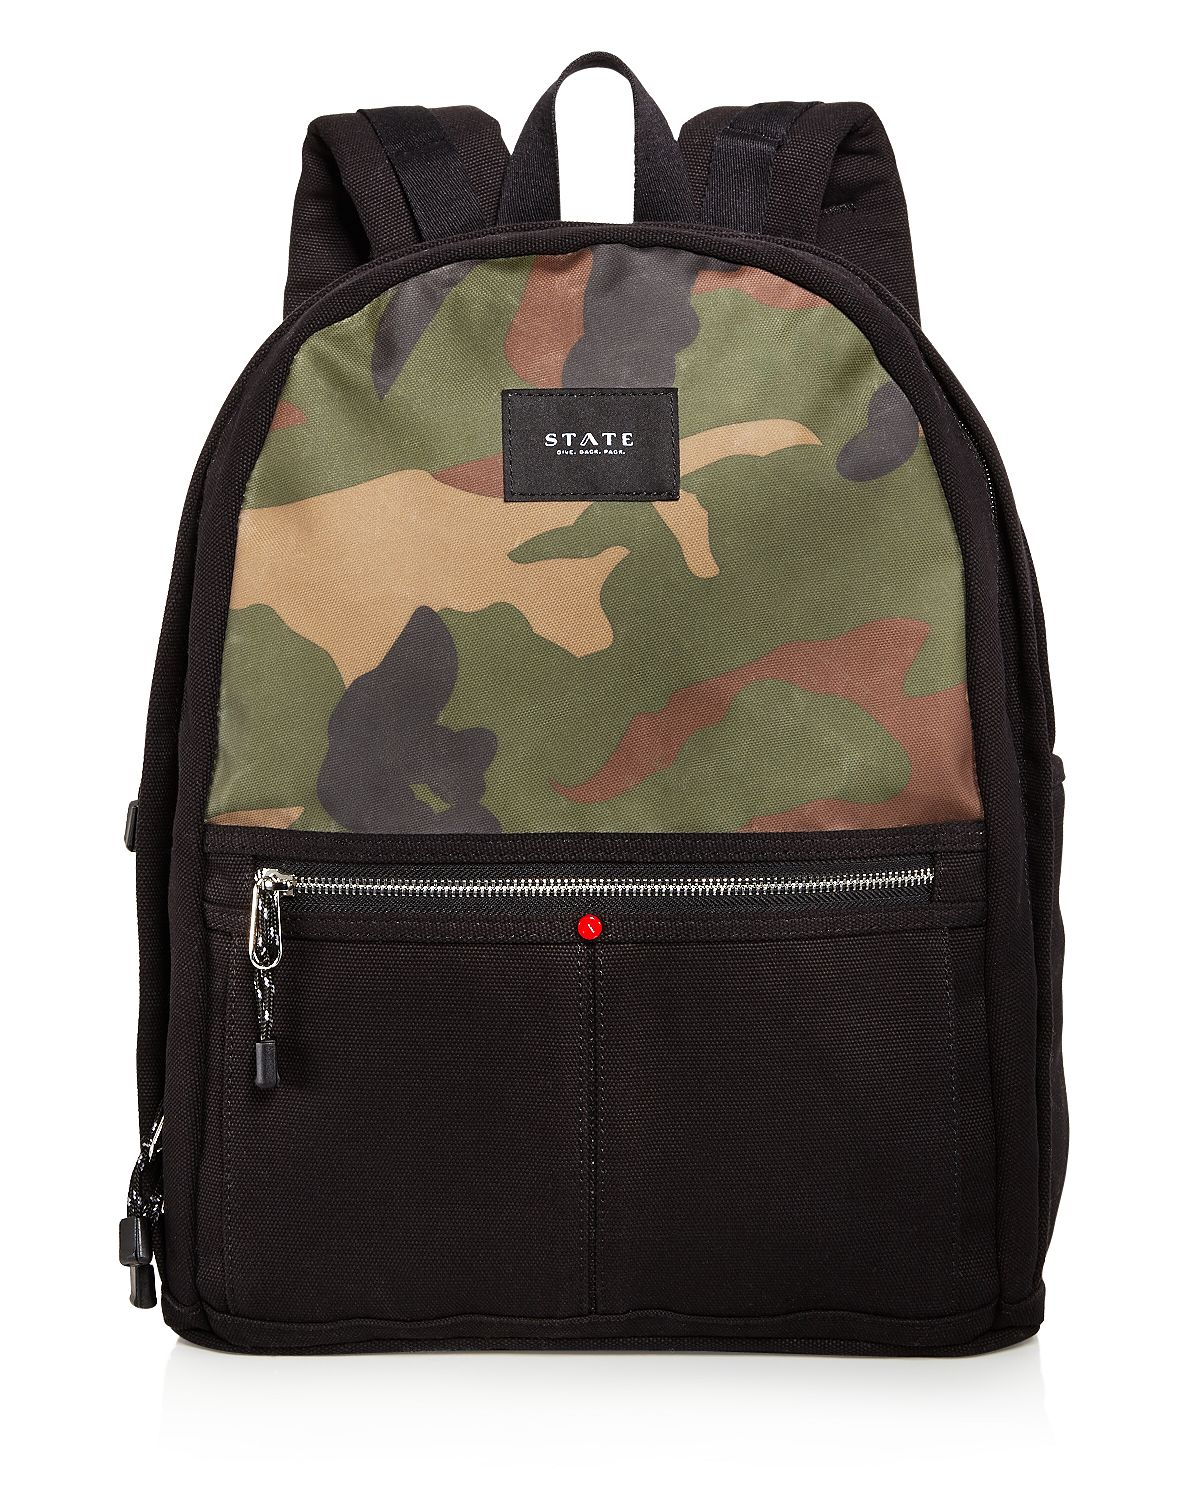 State Nevins Camouflage Backpack Camo/Black